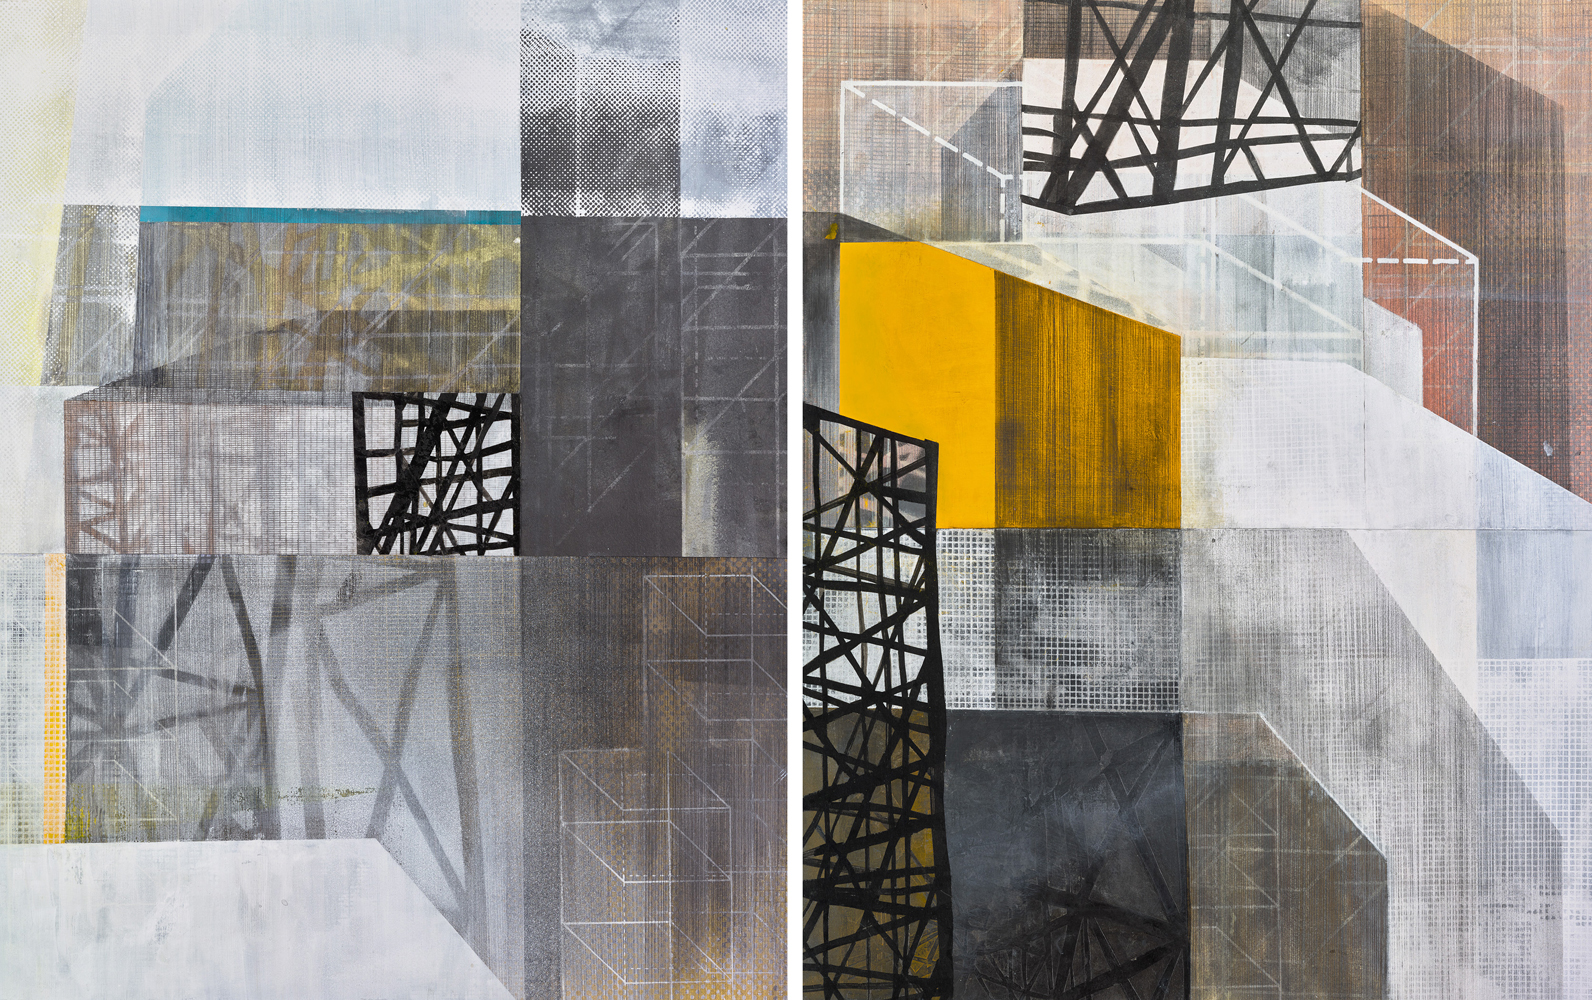 Amanda Knowles, Untitled (construct) III-IV, 2018, mixed media on paper, 26 x 41 inches, $2900.